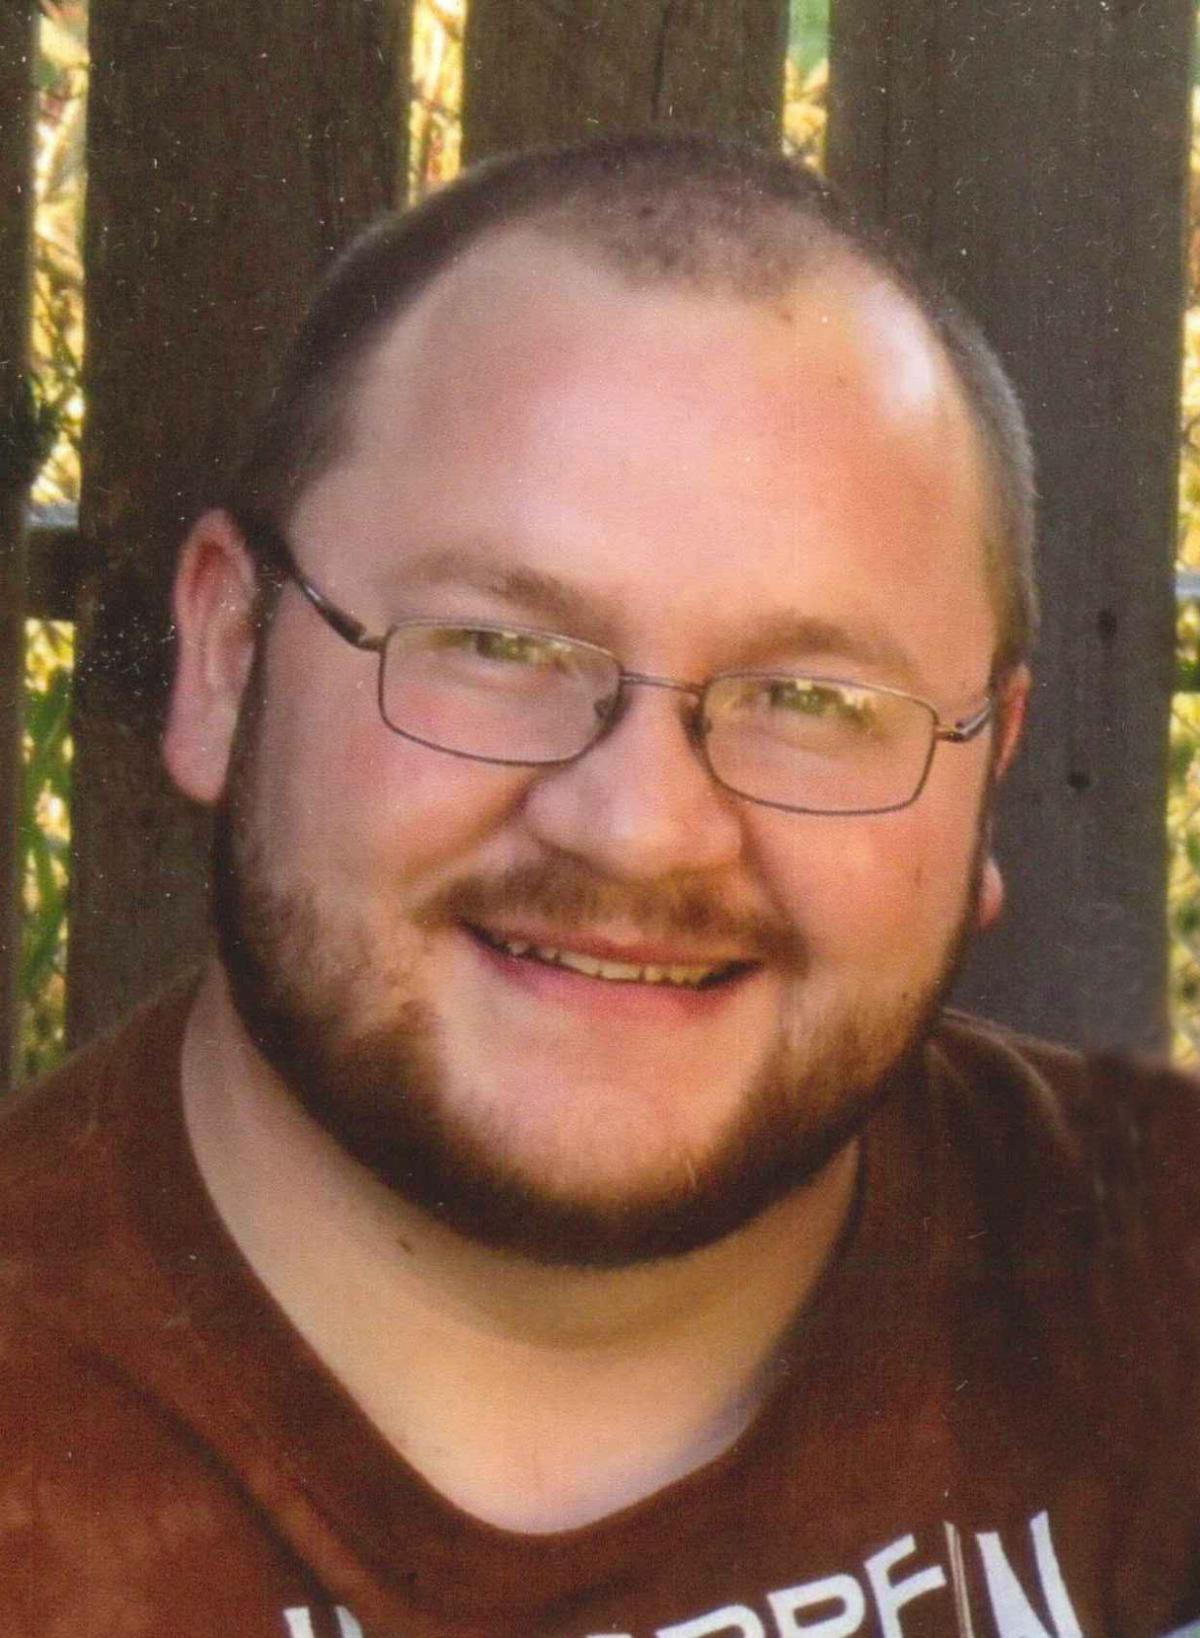 kasey eddy, 29 | obituaries | theindependent